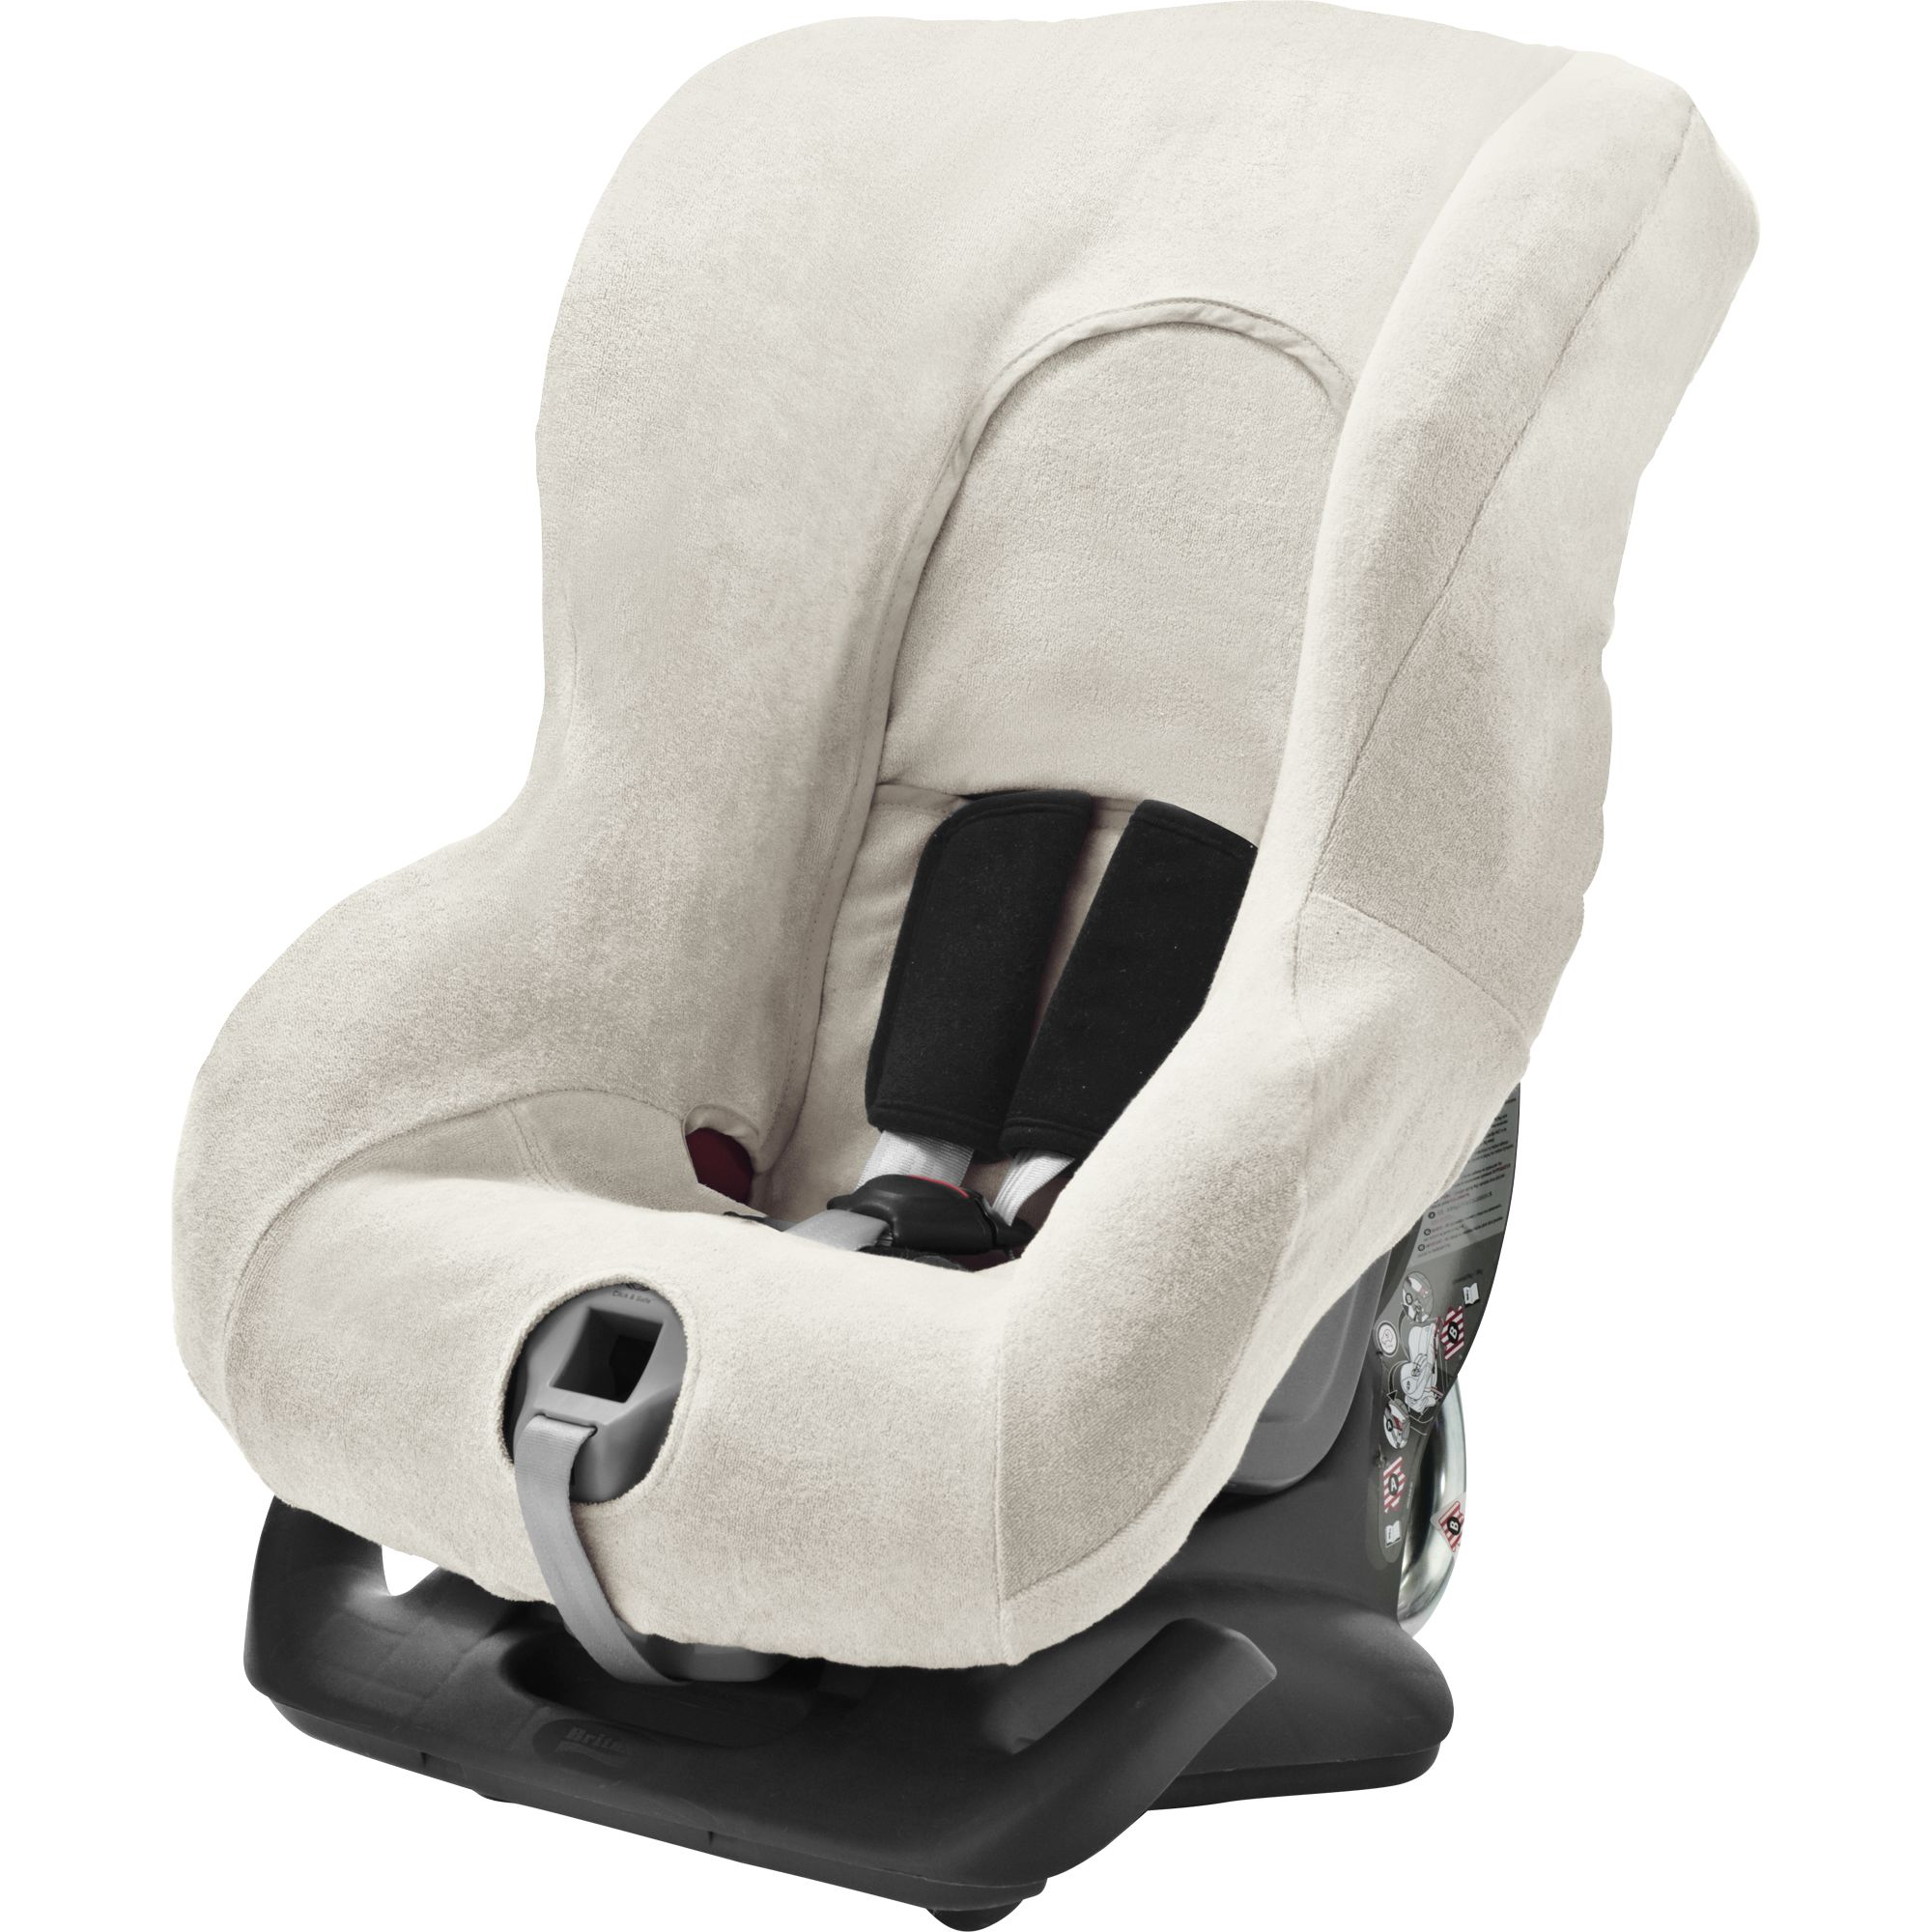 Letný poťah Britax Romer First Class Plus Off-White 2020